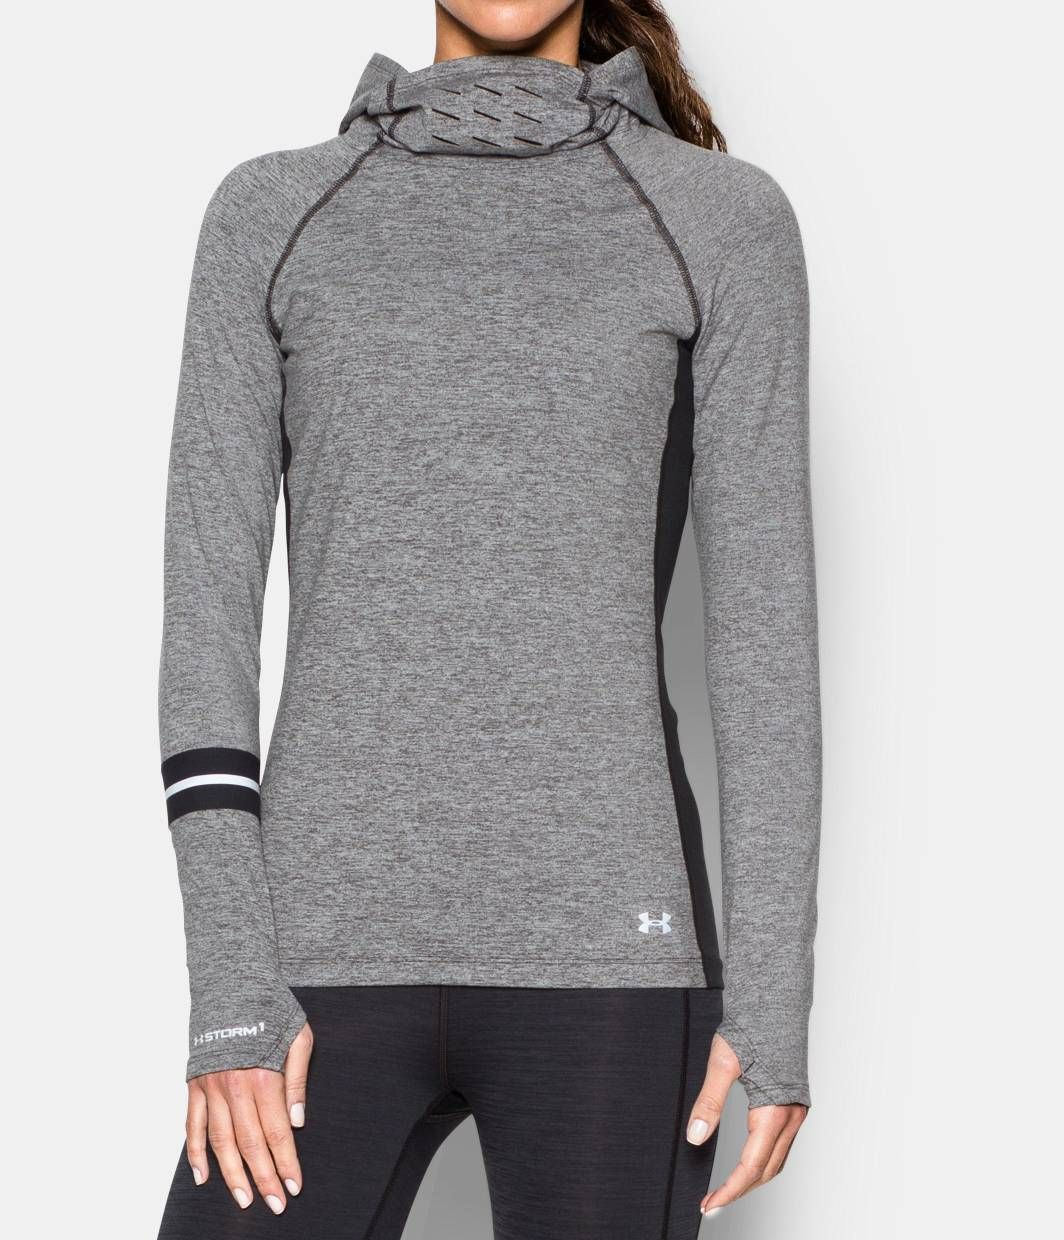 f01a6ef8a Shop Under Armour for Women's UA Storm Layered Up Hoodie in our Womens Tops  department. Free shipping is available in US.